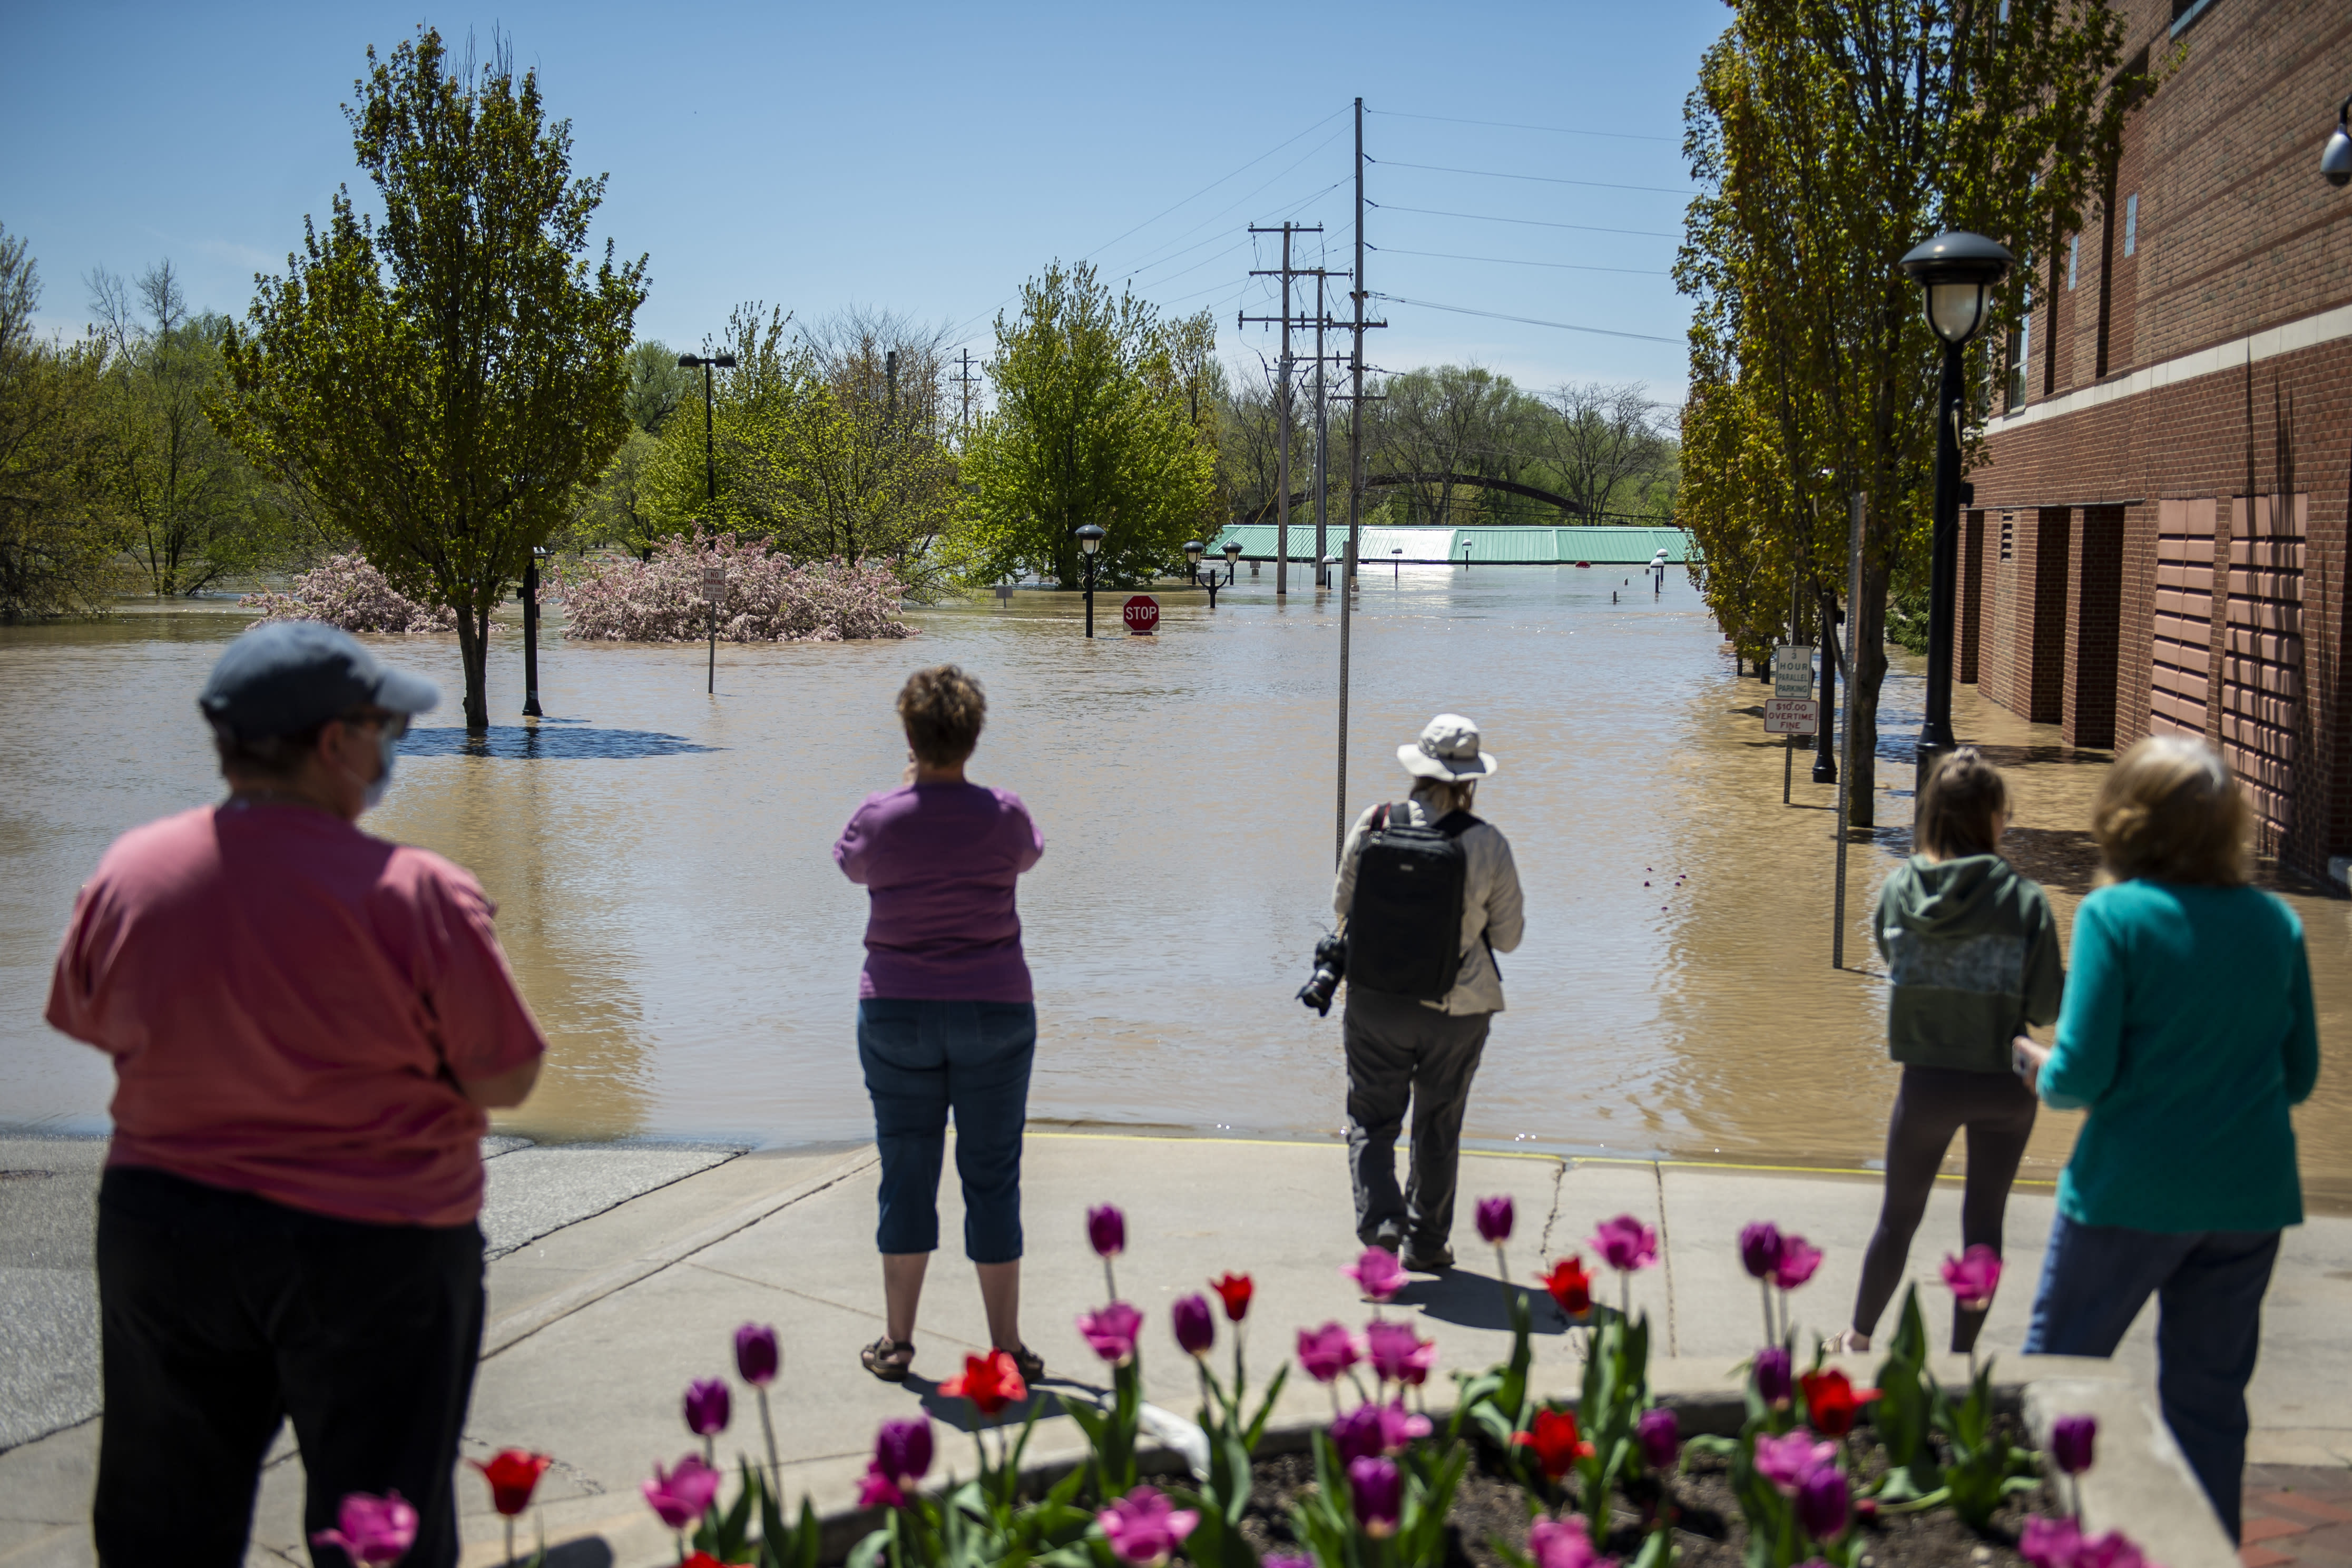 People check out the flooding near the H Hotel in downtown Midland, Mich., on Wednesday, May 20, 2020. After the Edenville Dam failed and the Tittabawassee River flooded surrounding areas, many residents were urged to leave their homes. (Kaytie Boomer/The Bay City Times via AP)